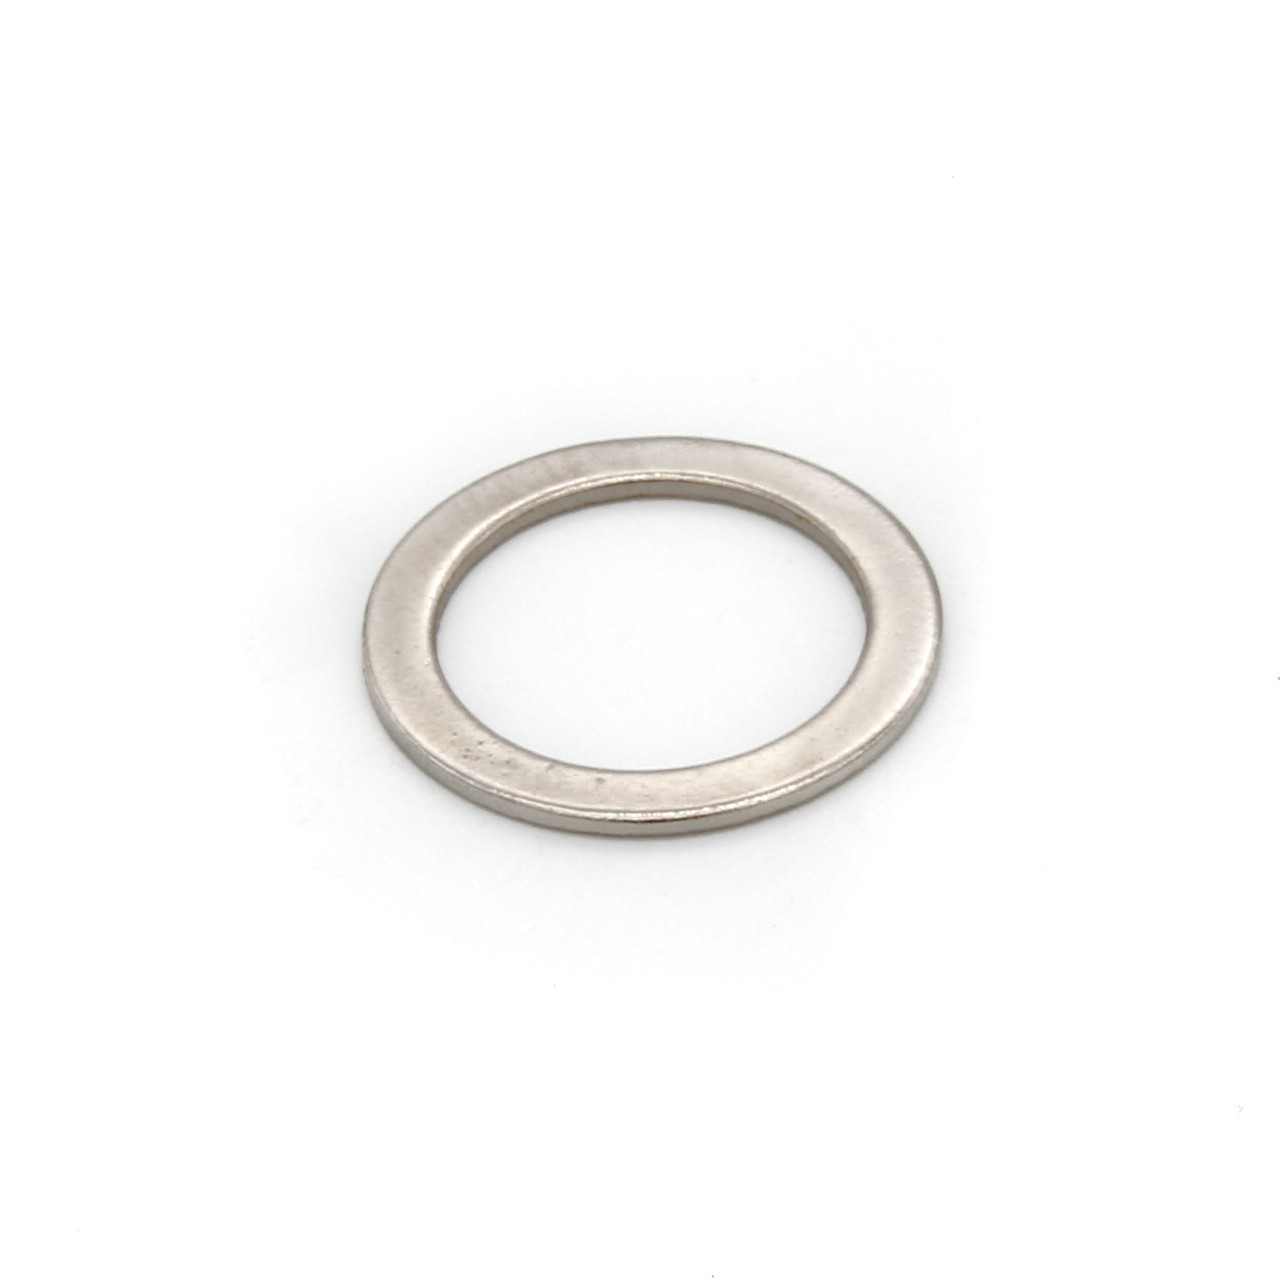 Metal Footswitch Washer - 10 pack